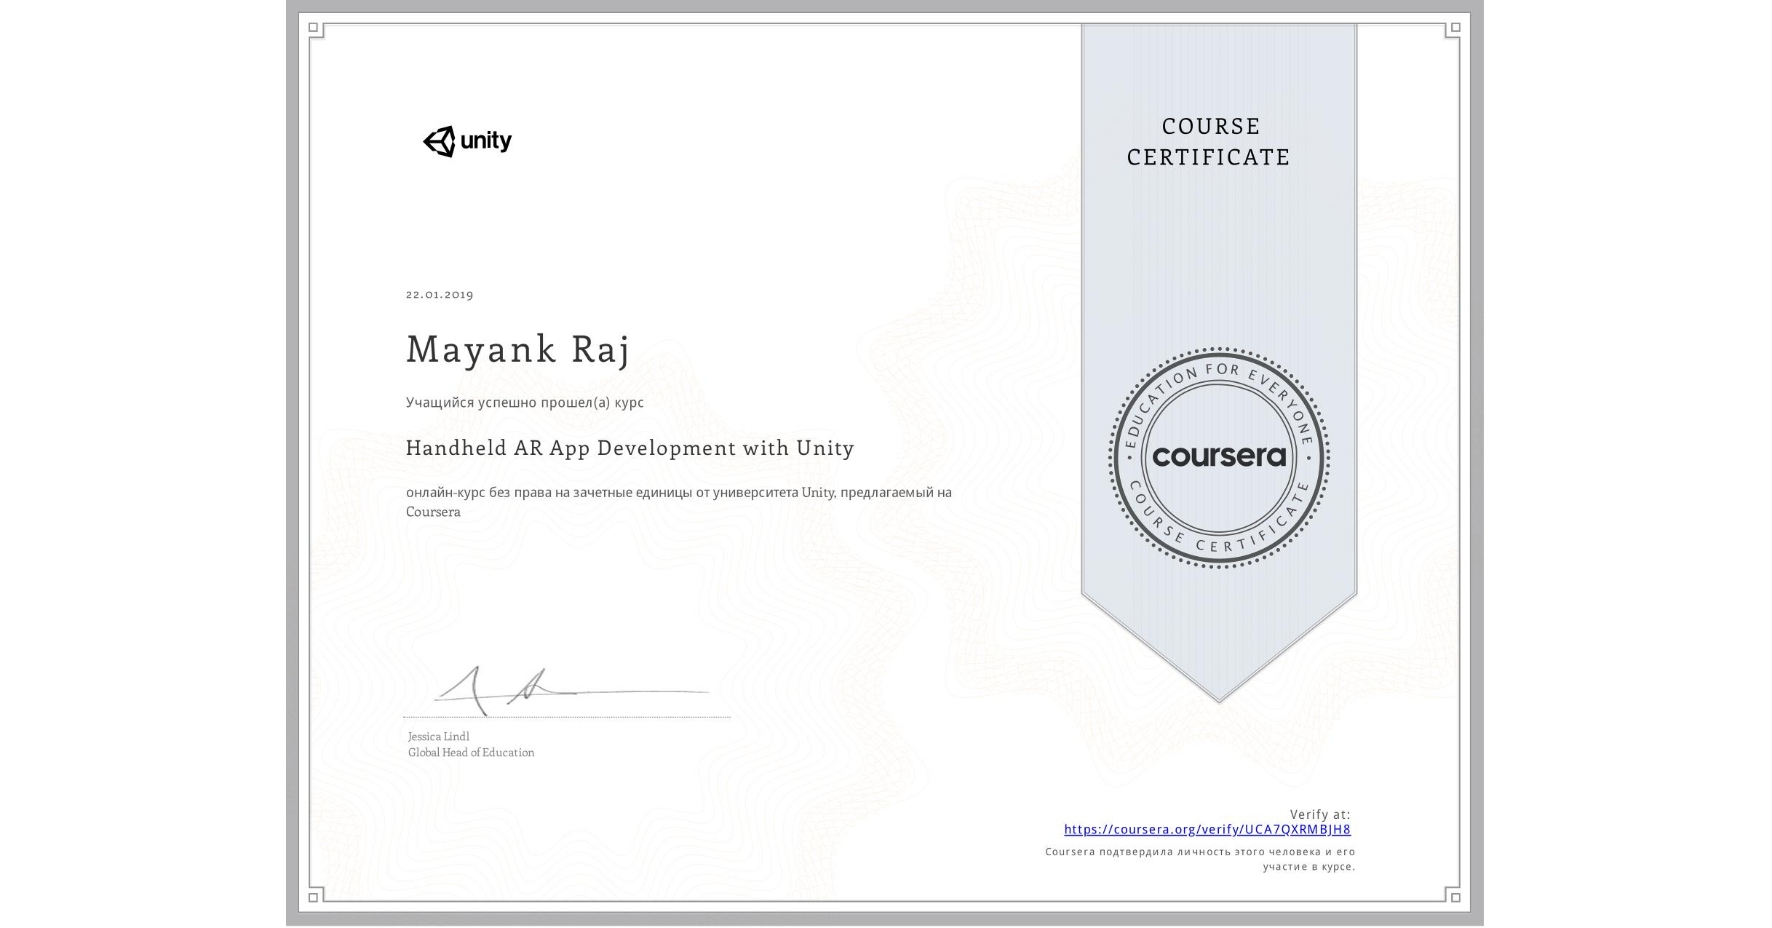 View certificate for Mayank Raj, Handheld AR App Development with Unity, an online non-credit course authorized by Unity and offered through Coursera